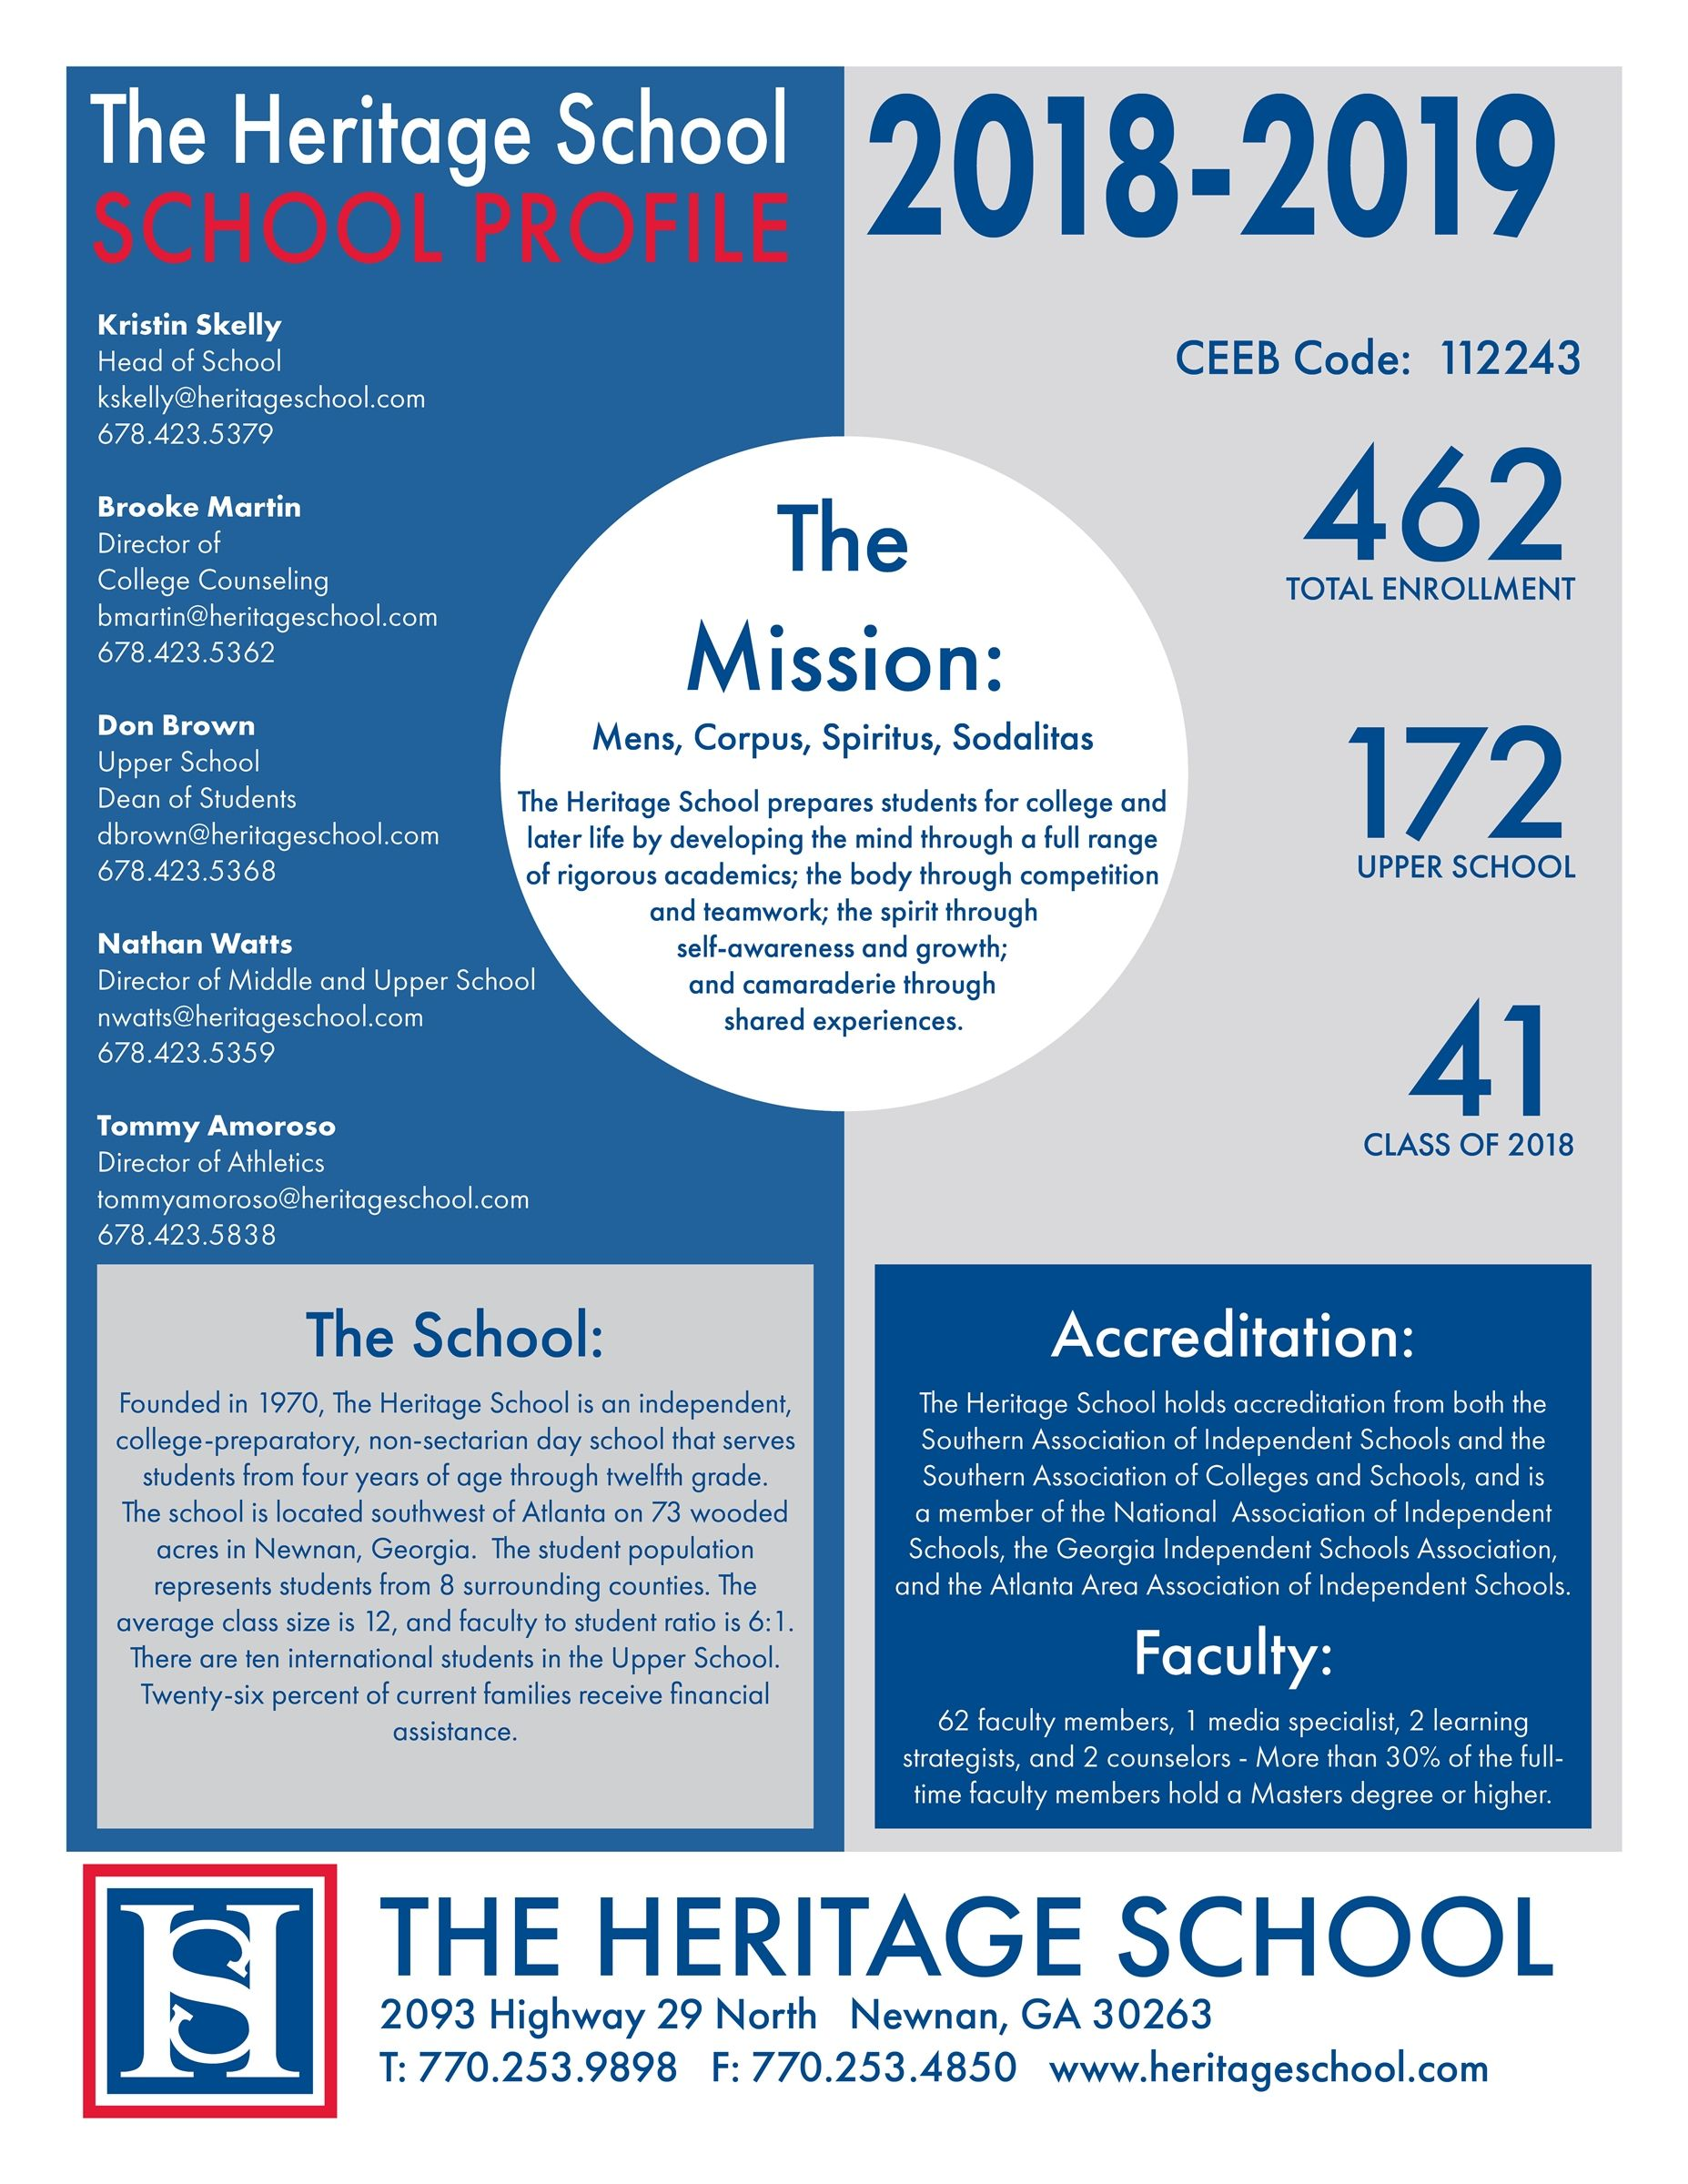 2018-2019 Heritage School Profile